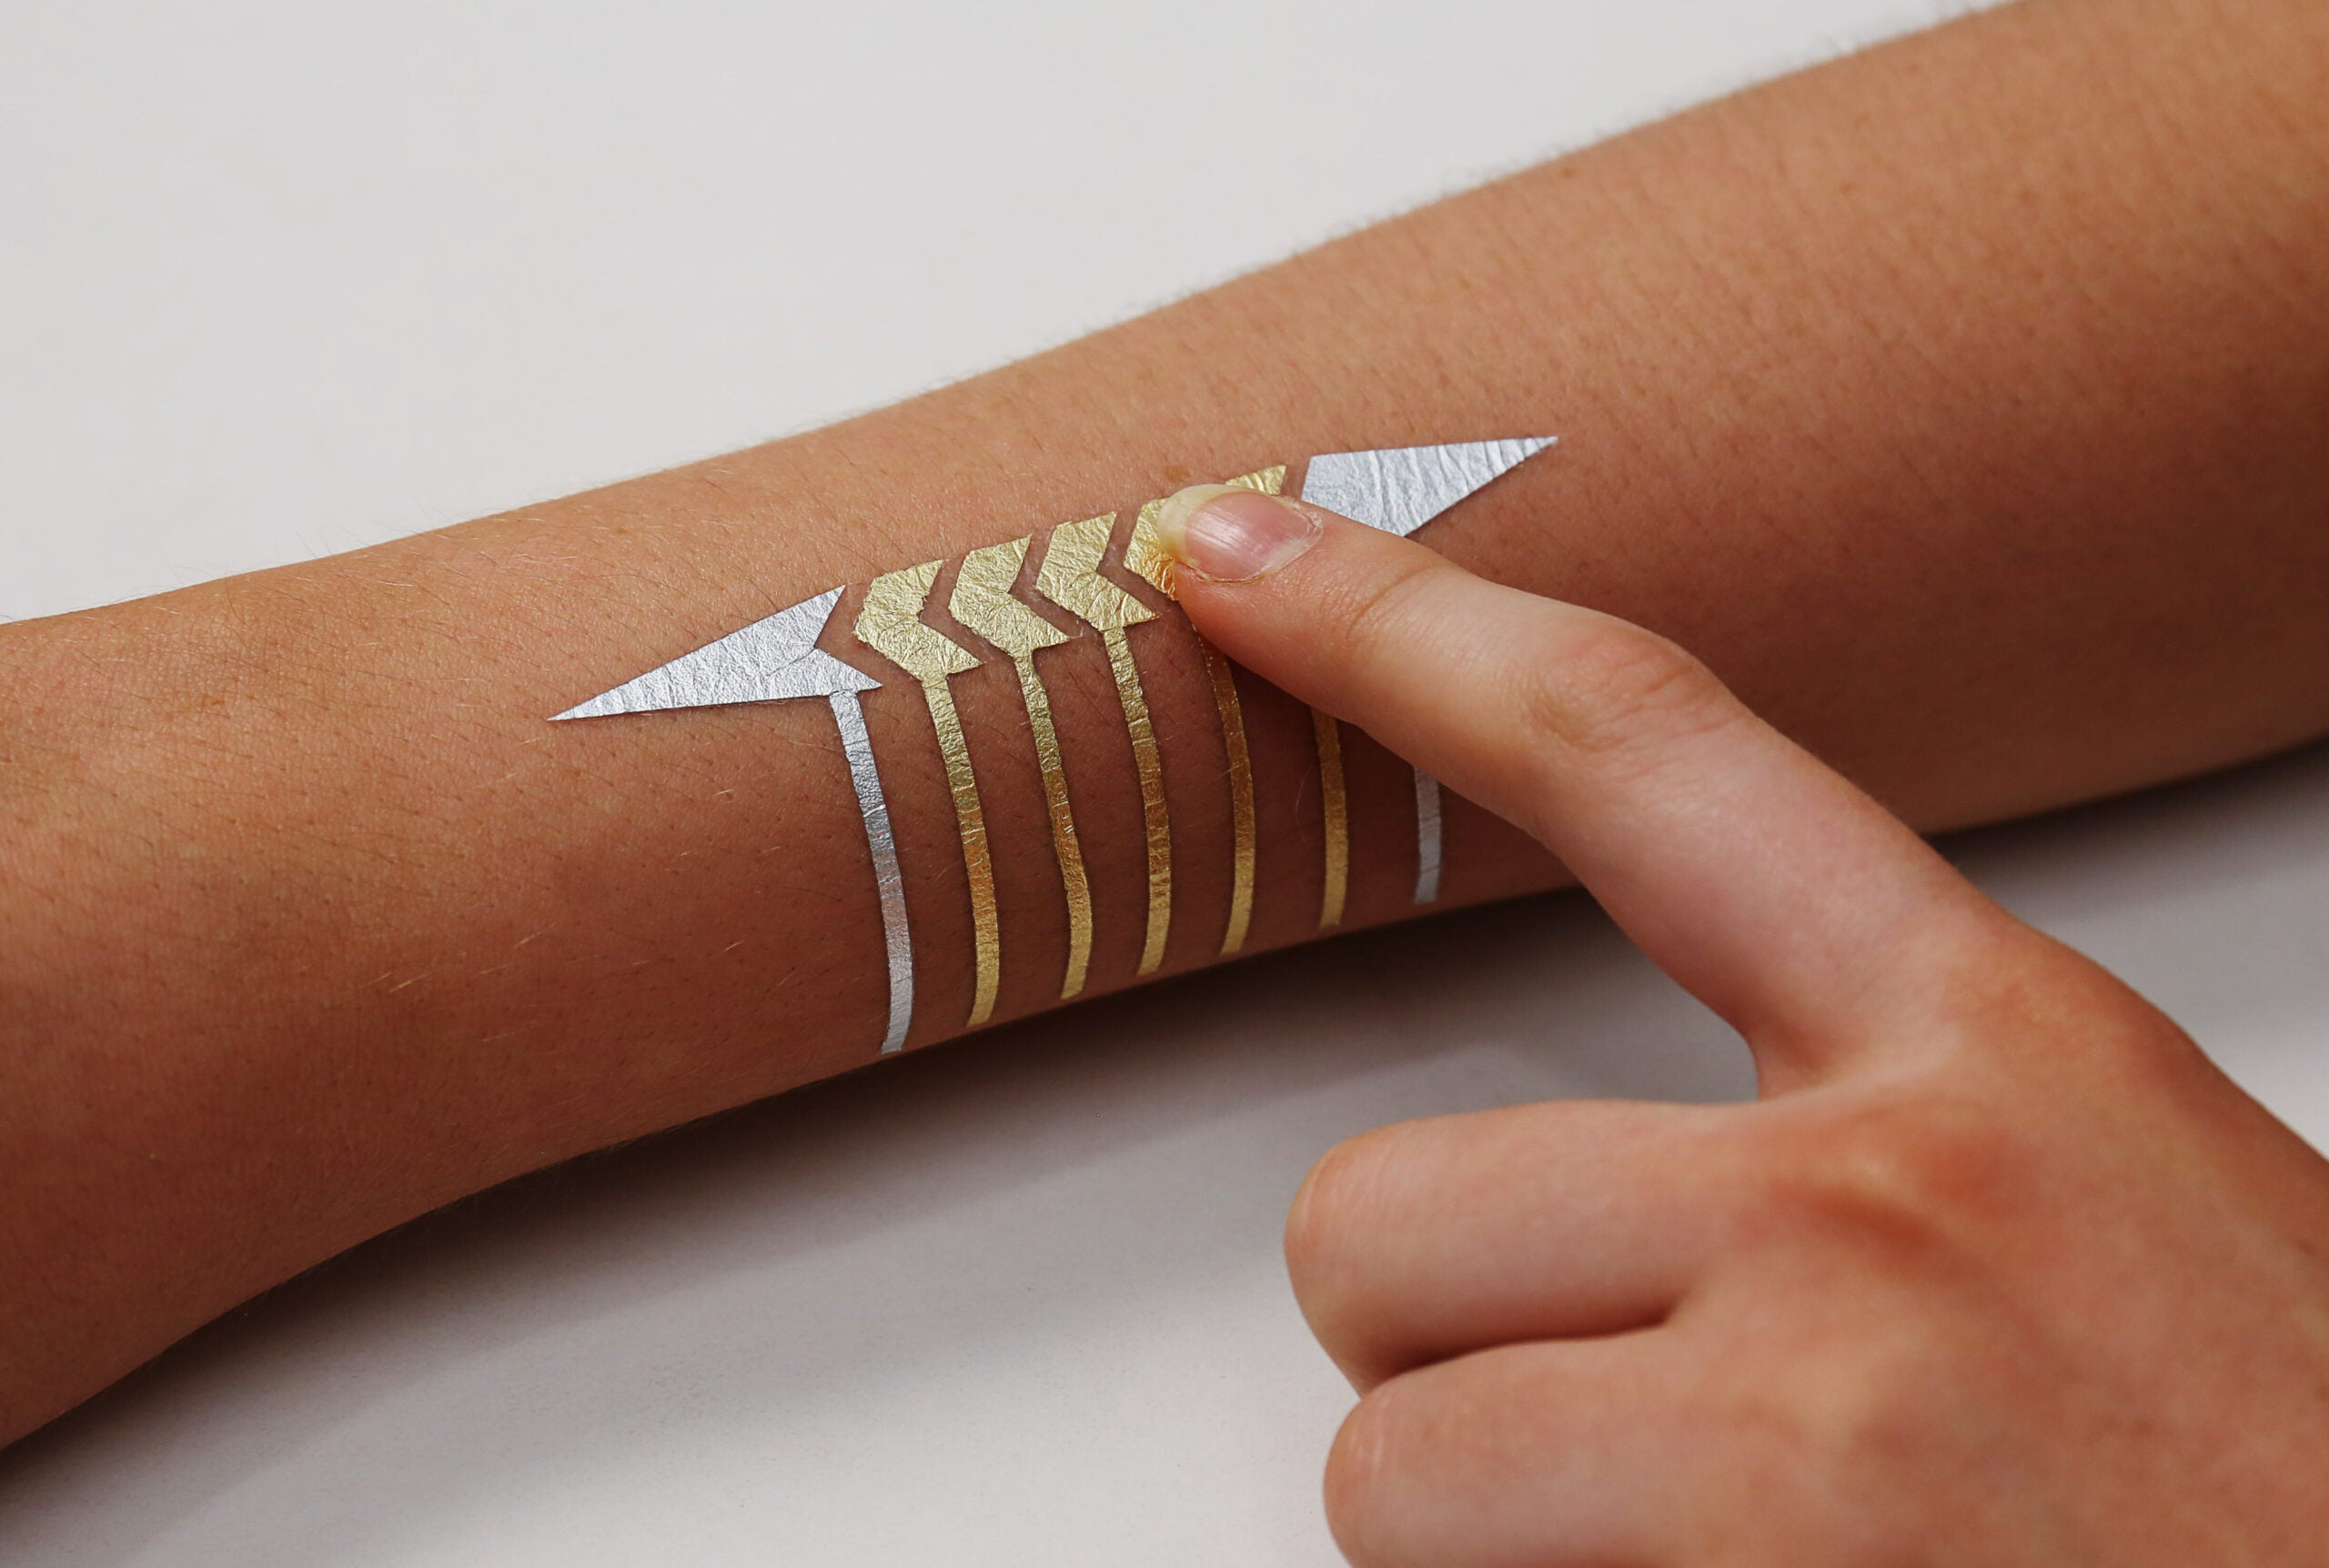 MIT Researchers Make Interactive Glowing Gold-Leaf Jewelry